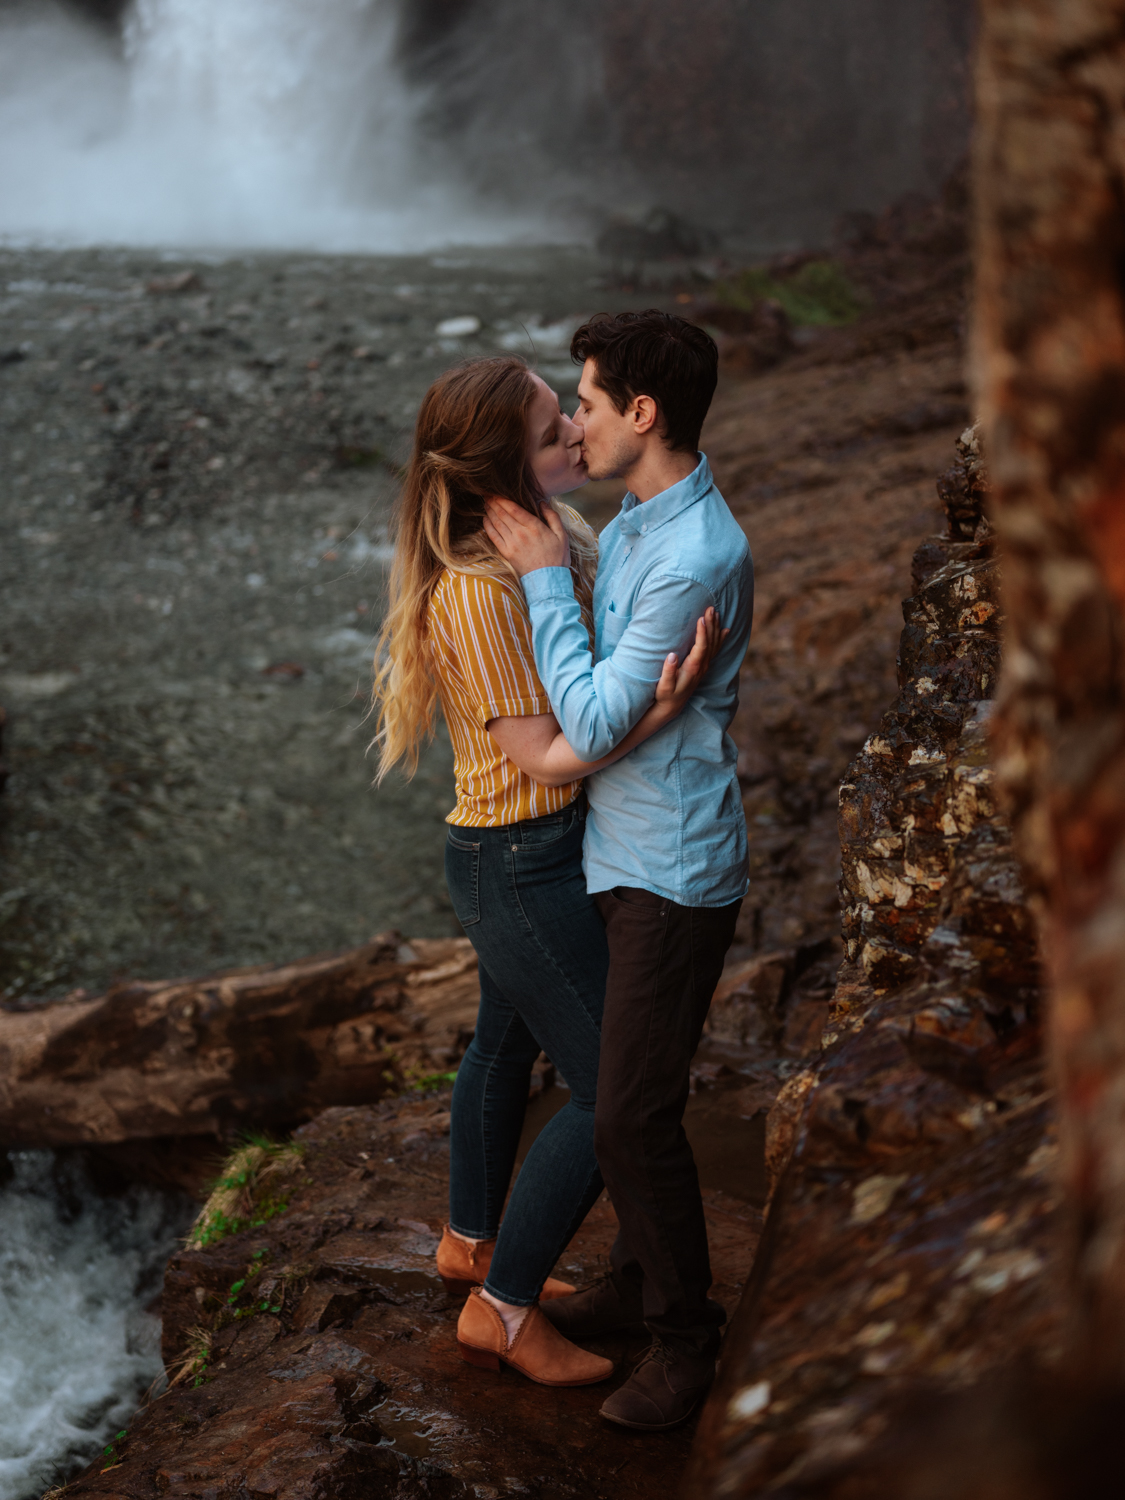 Franklin Falls Washington Engagement Session Stolen Glimpses Seattle Wedding Photographer 28.jpg